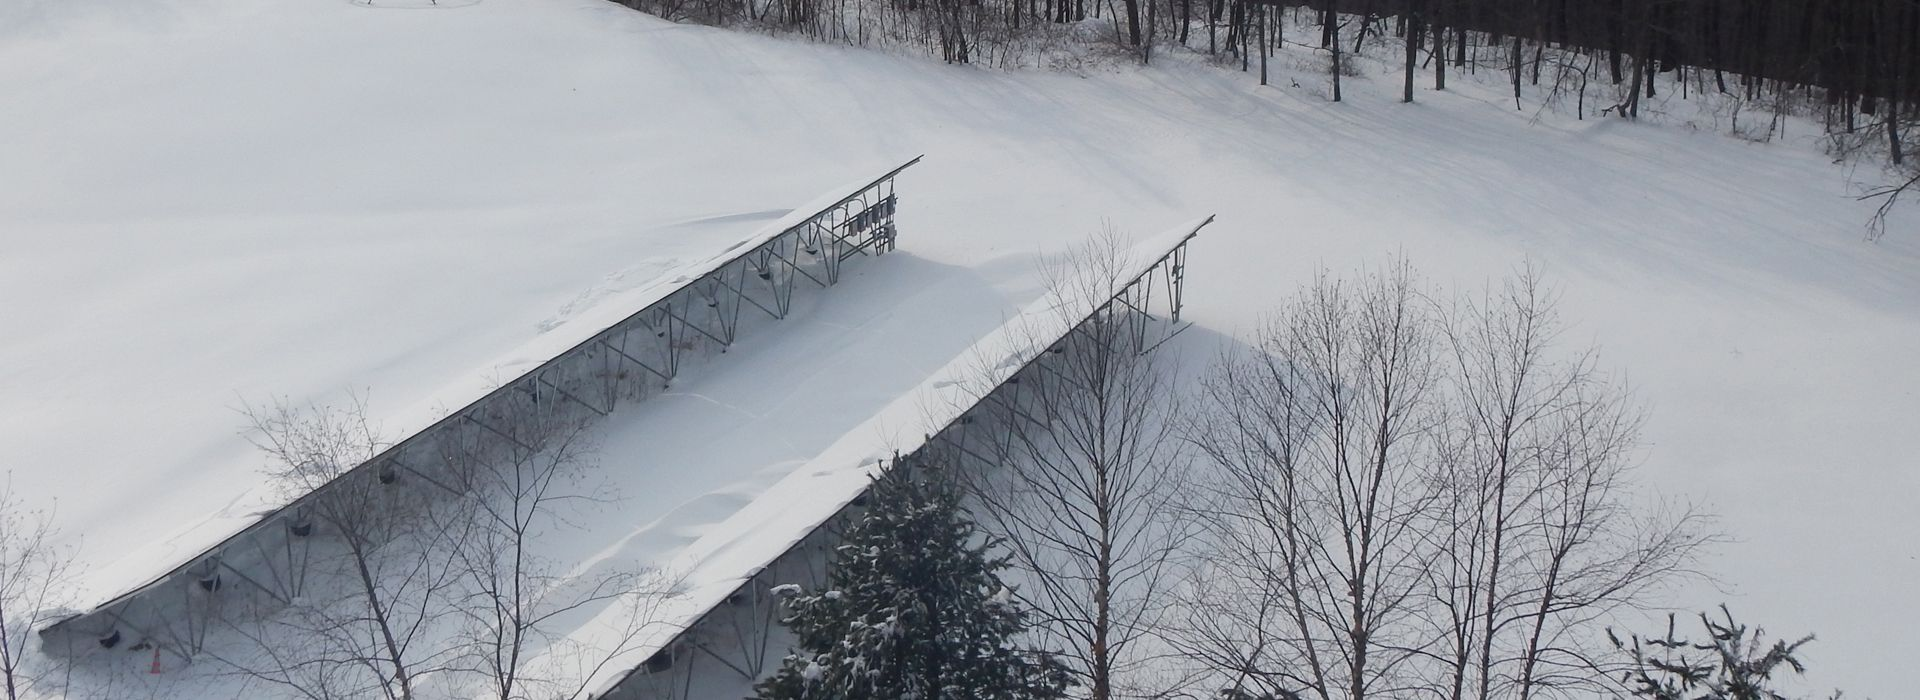 solar panels covered in snow